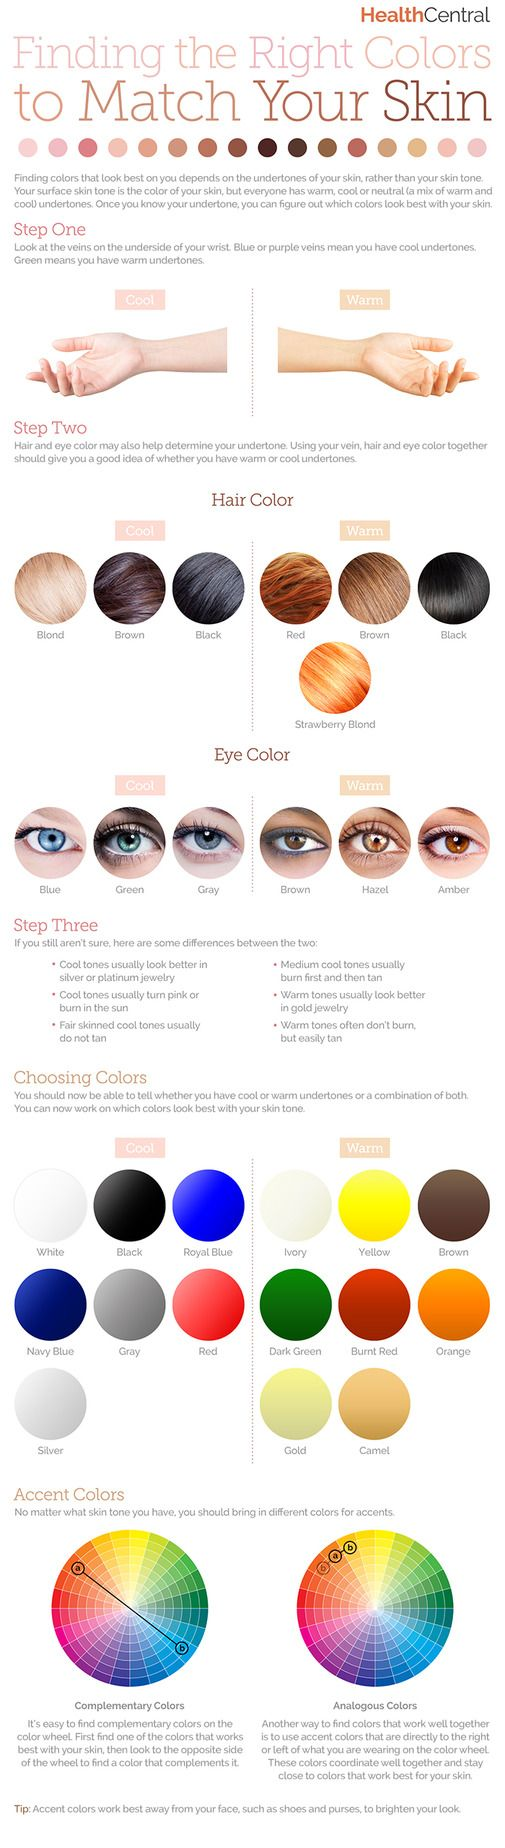 How to find the right colors to match your #skin: (#INFOGRAPHIC) - See more information about your skin and health here: http://www.healthcentral.com/skin-care/c/906496/170483/finding-match-infographic/?ap=2012